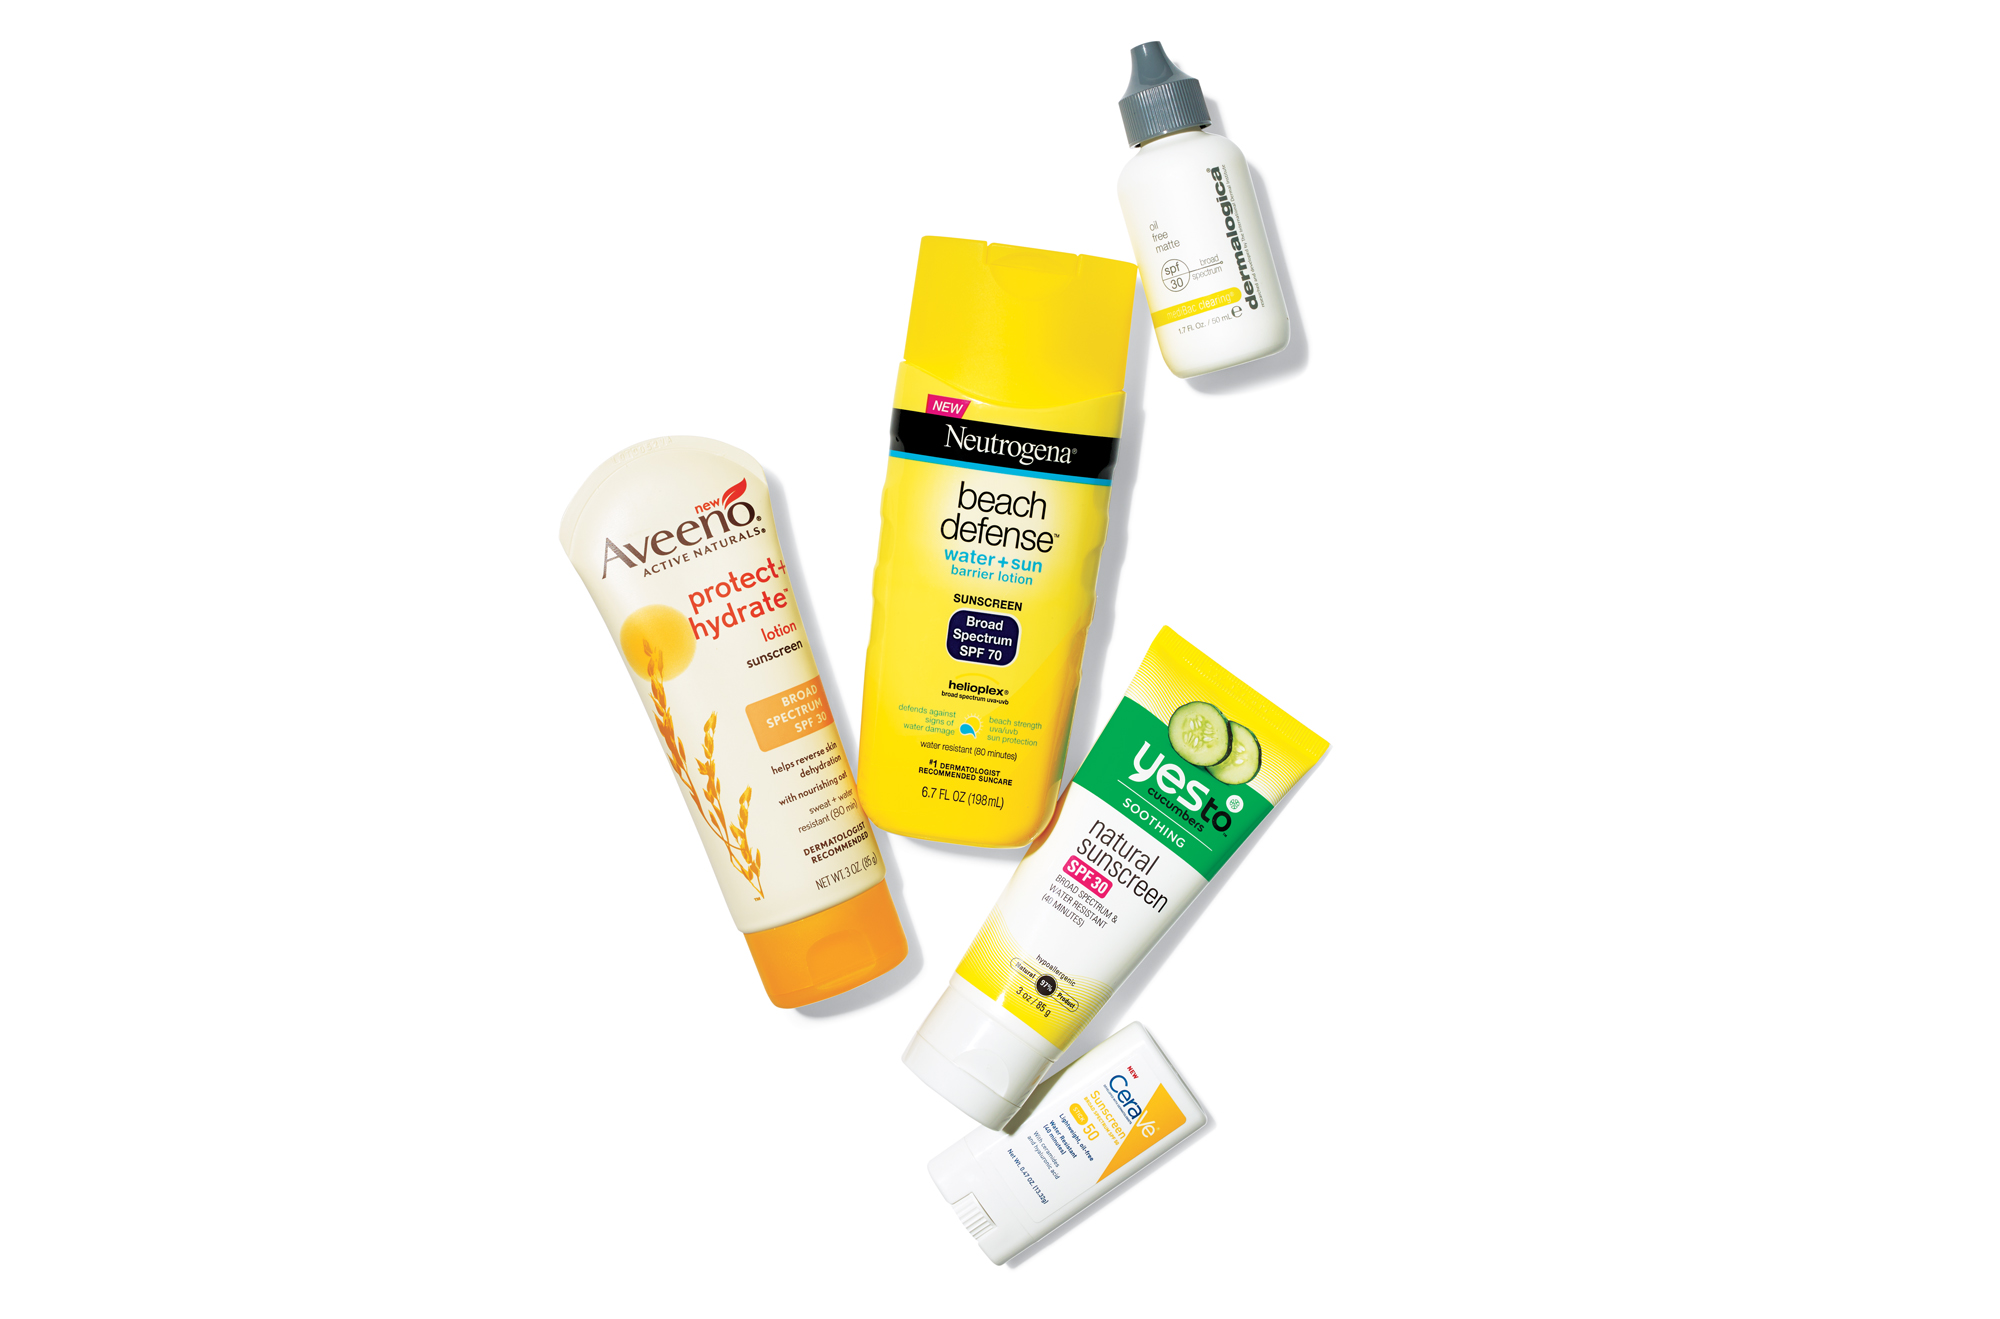 Various sunscreens